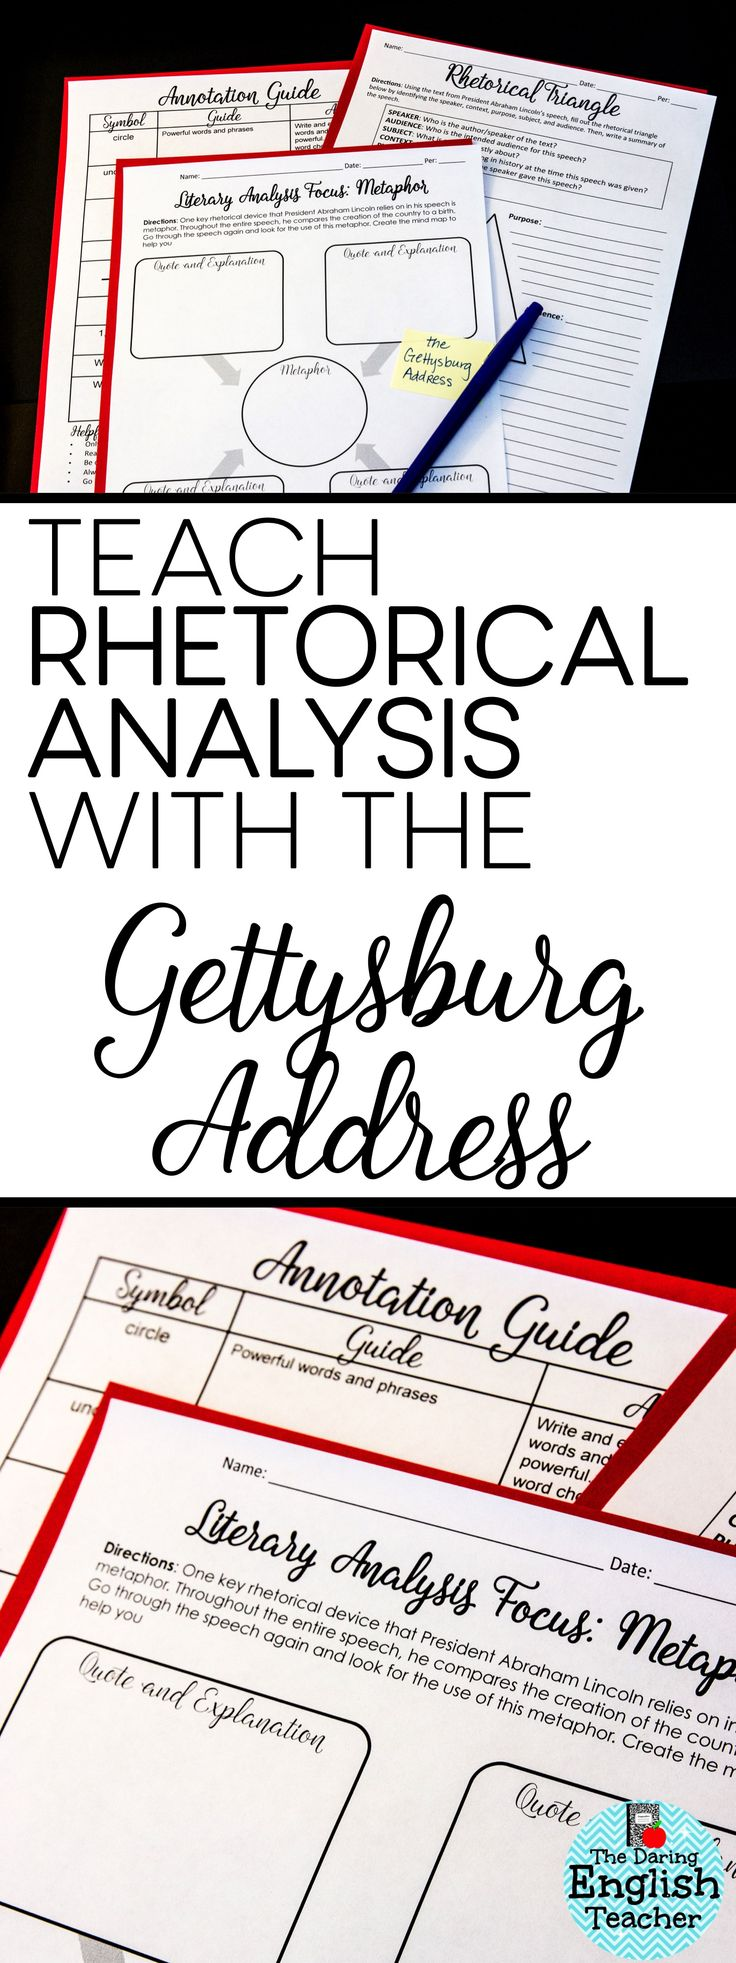 Teach rhetorical analysis, rhetorical appeals, and rhetorical devices using the Gettysburg Address. American Literature. High school ELA.